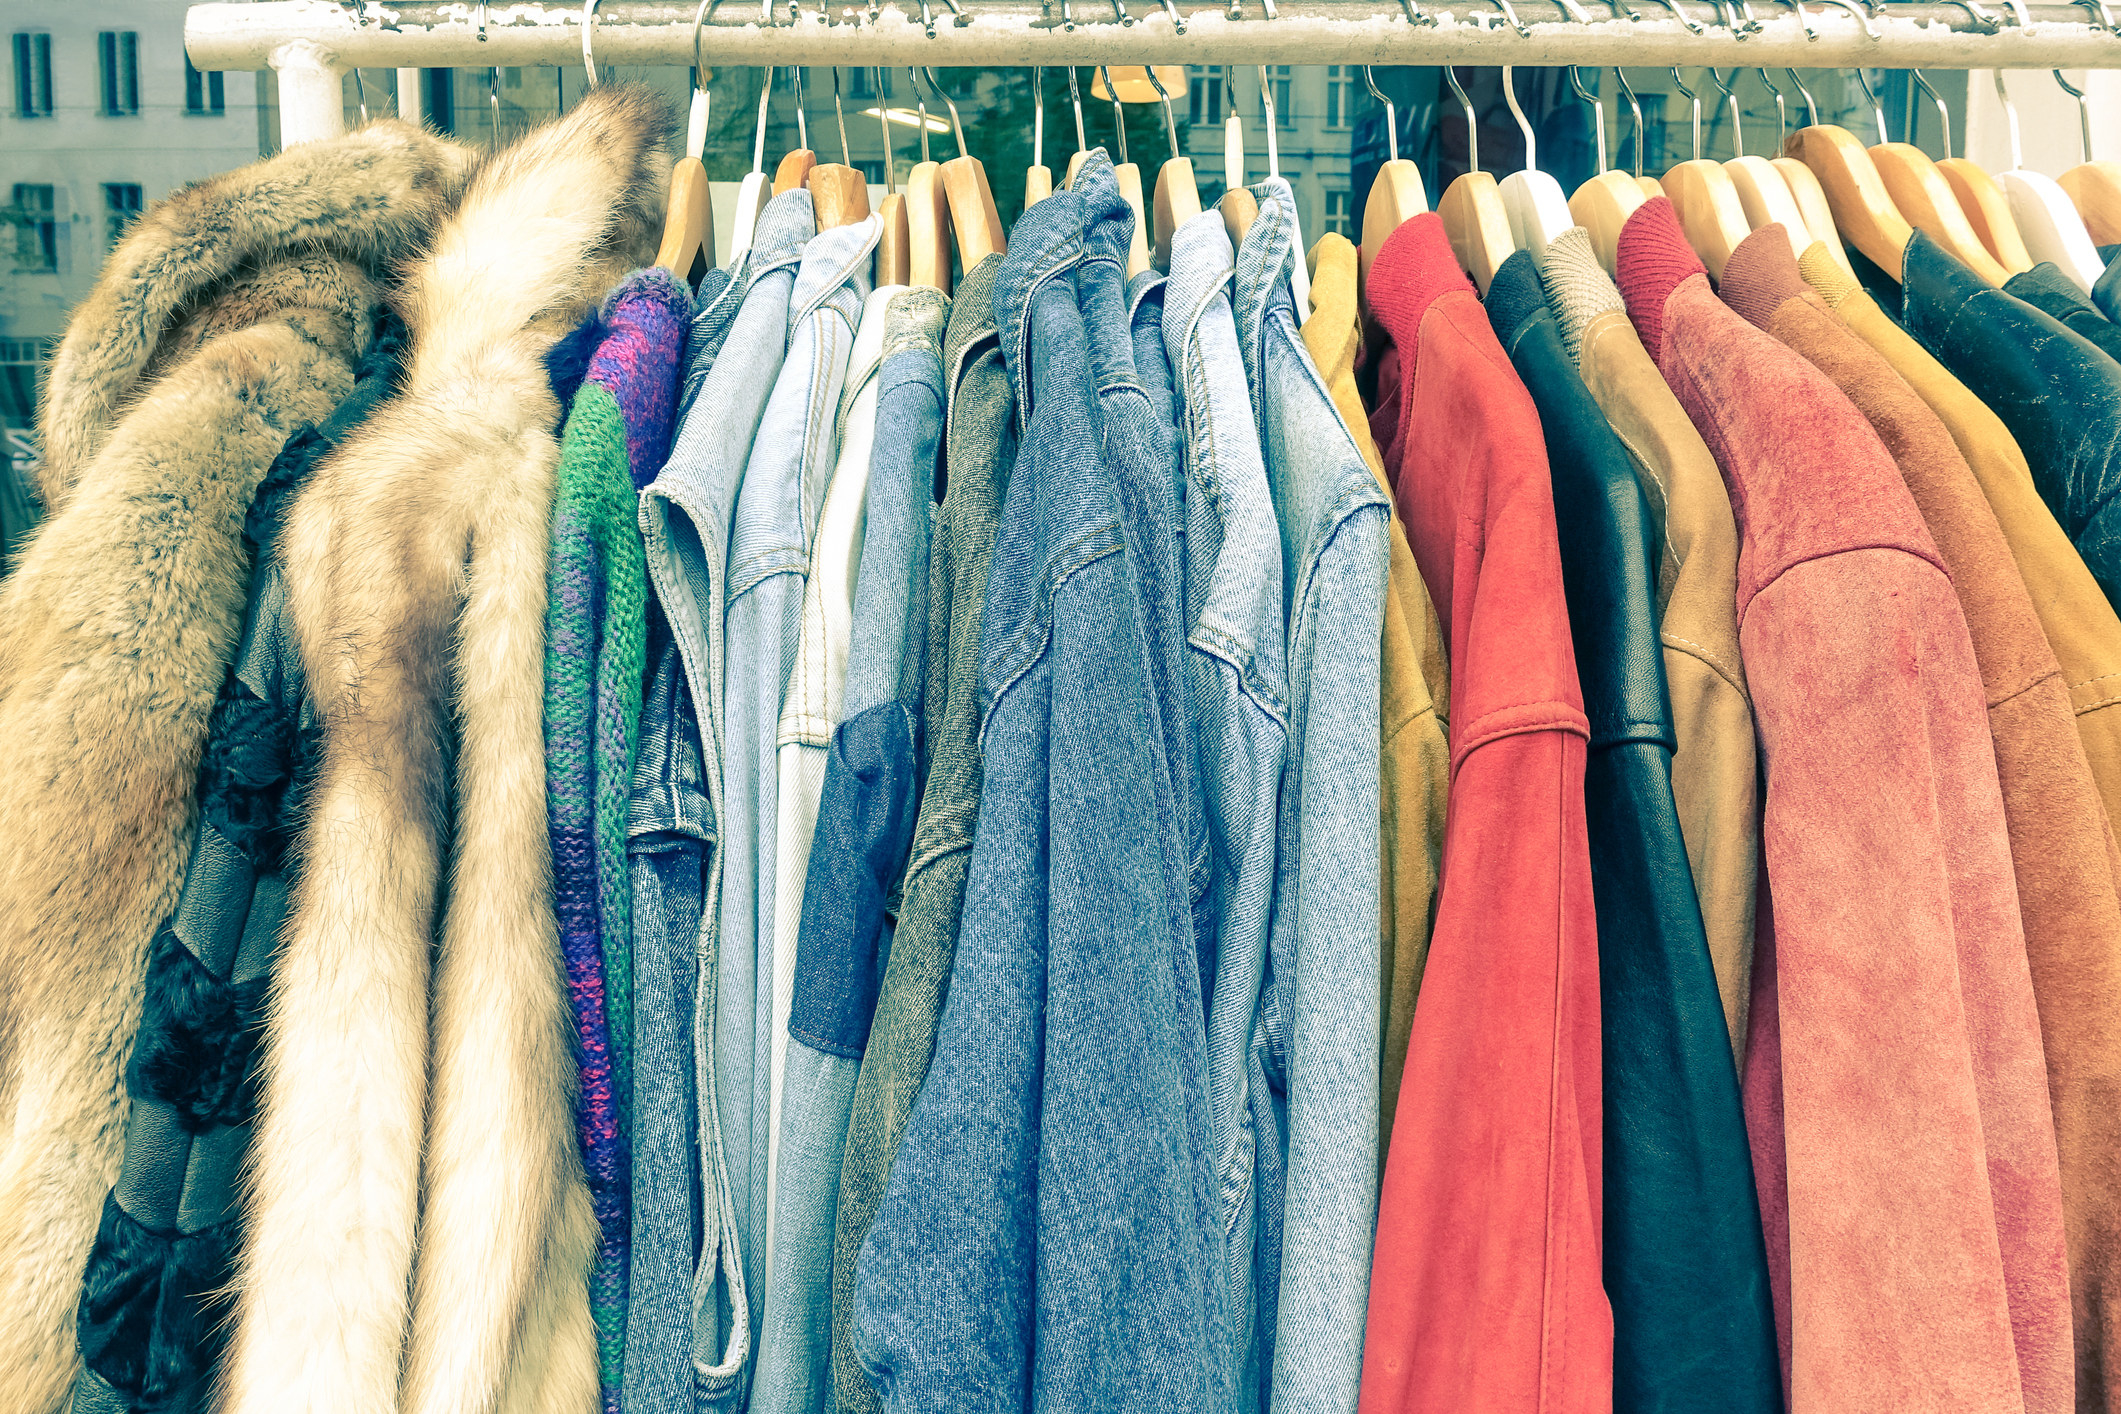 photo of a up-close hanging wrack of jackets, the jackets are a mix of fur and jean jackets